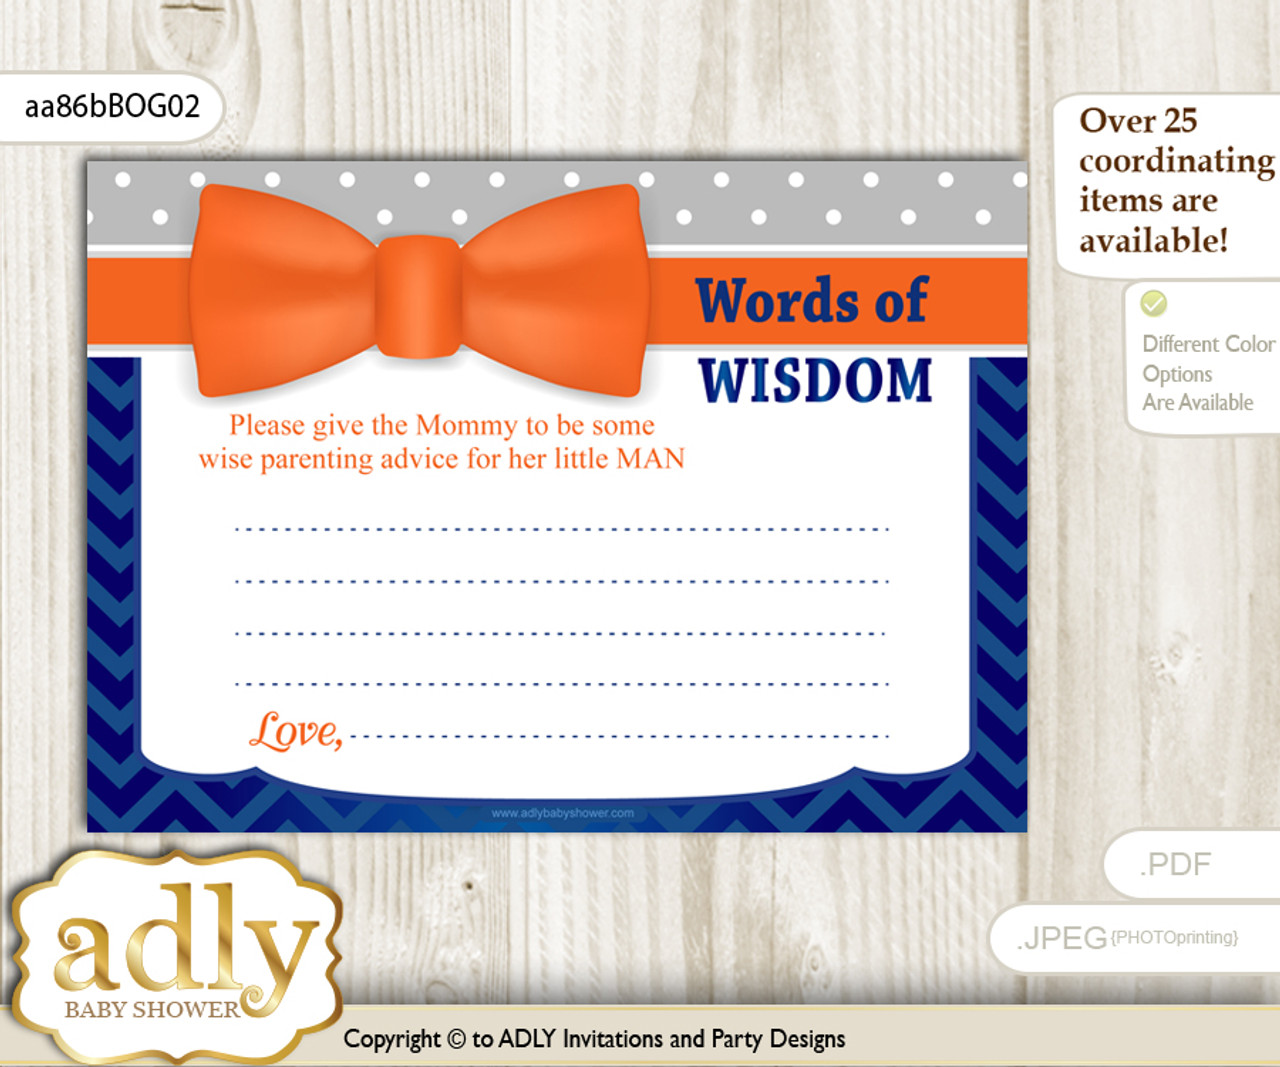 picture about Printable Bow Tie called Orange Blue Boy Bow Tie Terms of Knowledge or an Information Printable Card for Youngster Shower, Gray